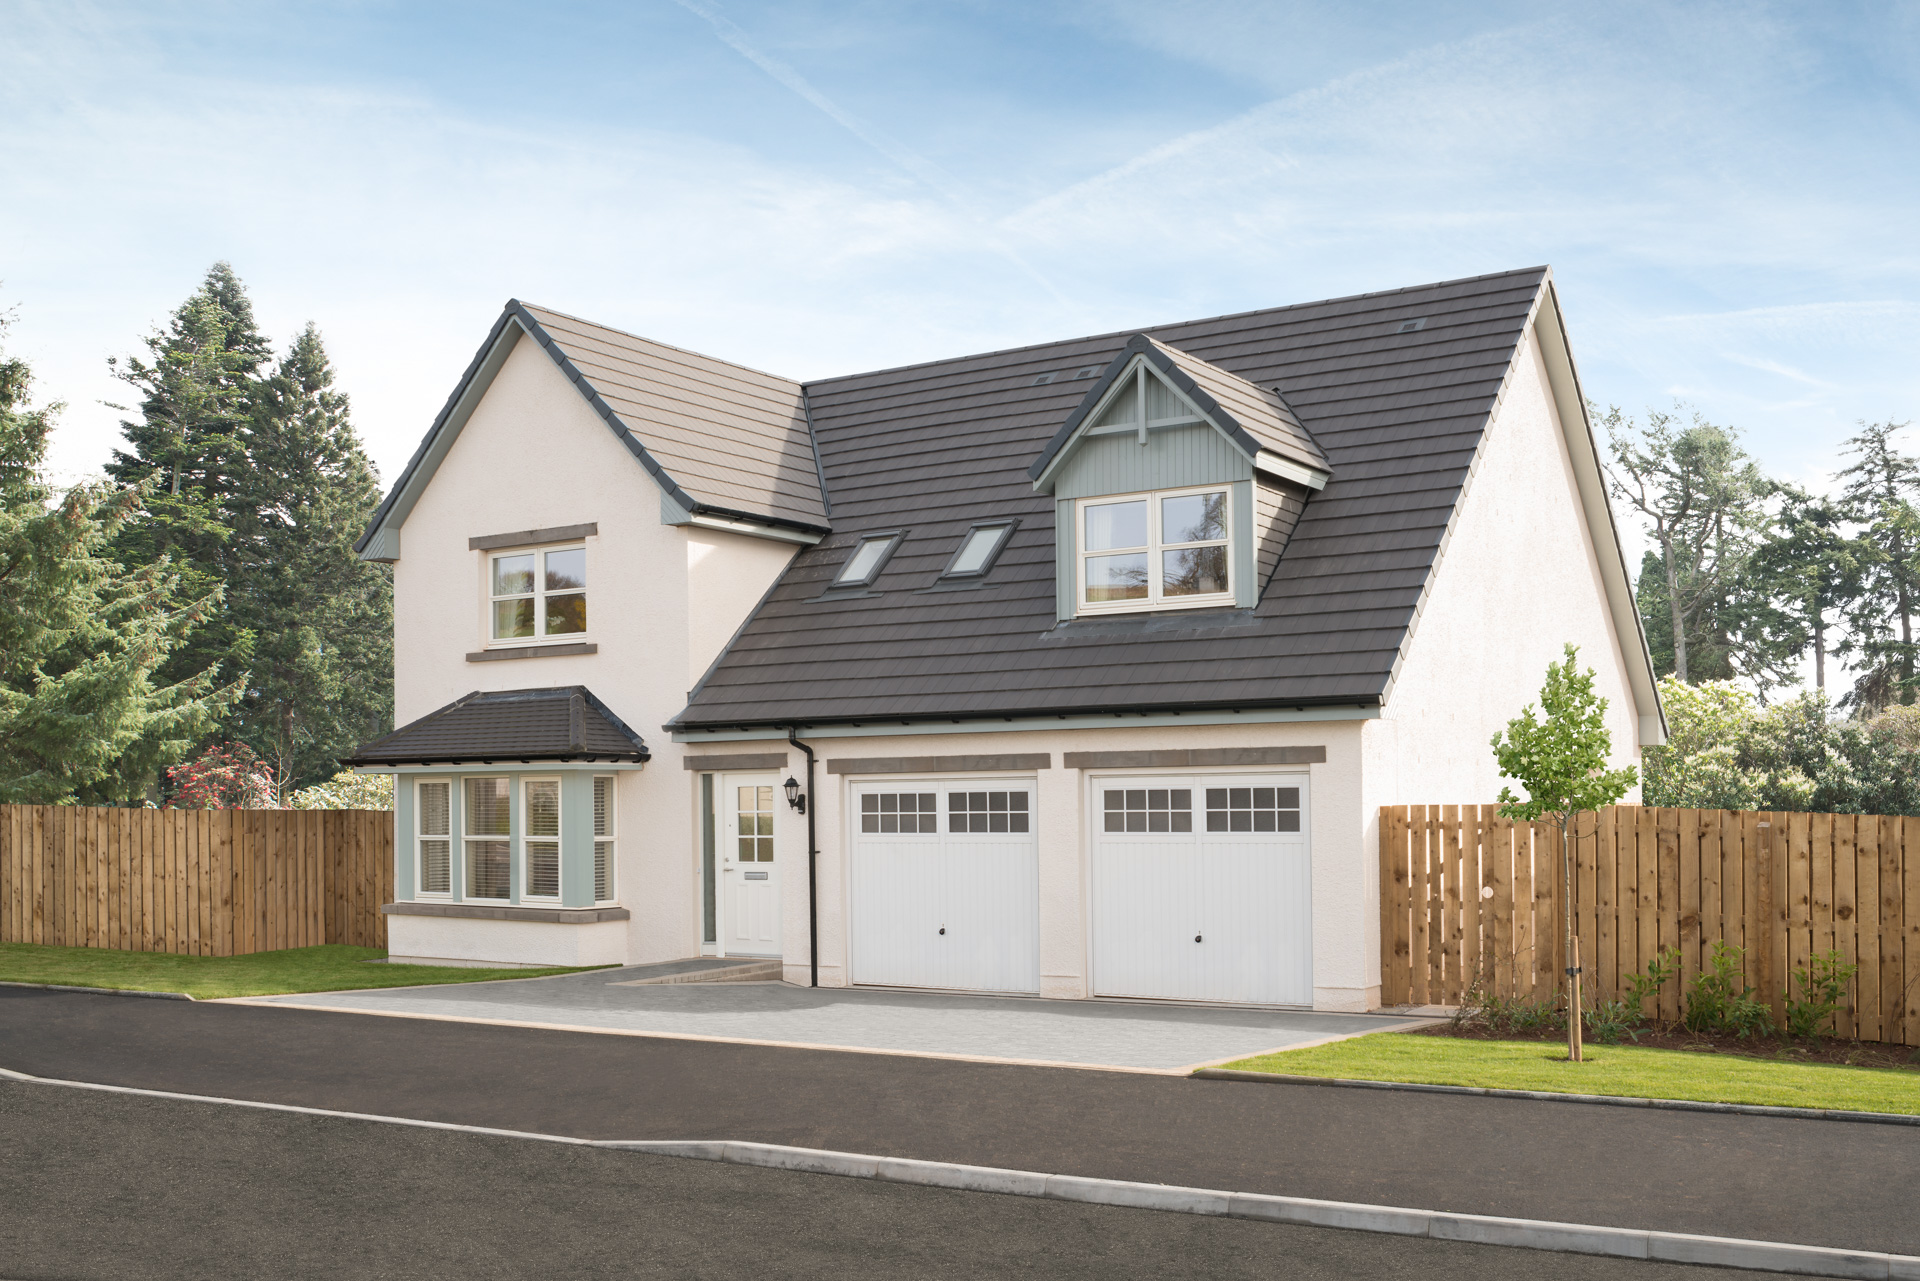 Plot 10 - The Marr - The Beeches